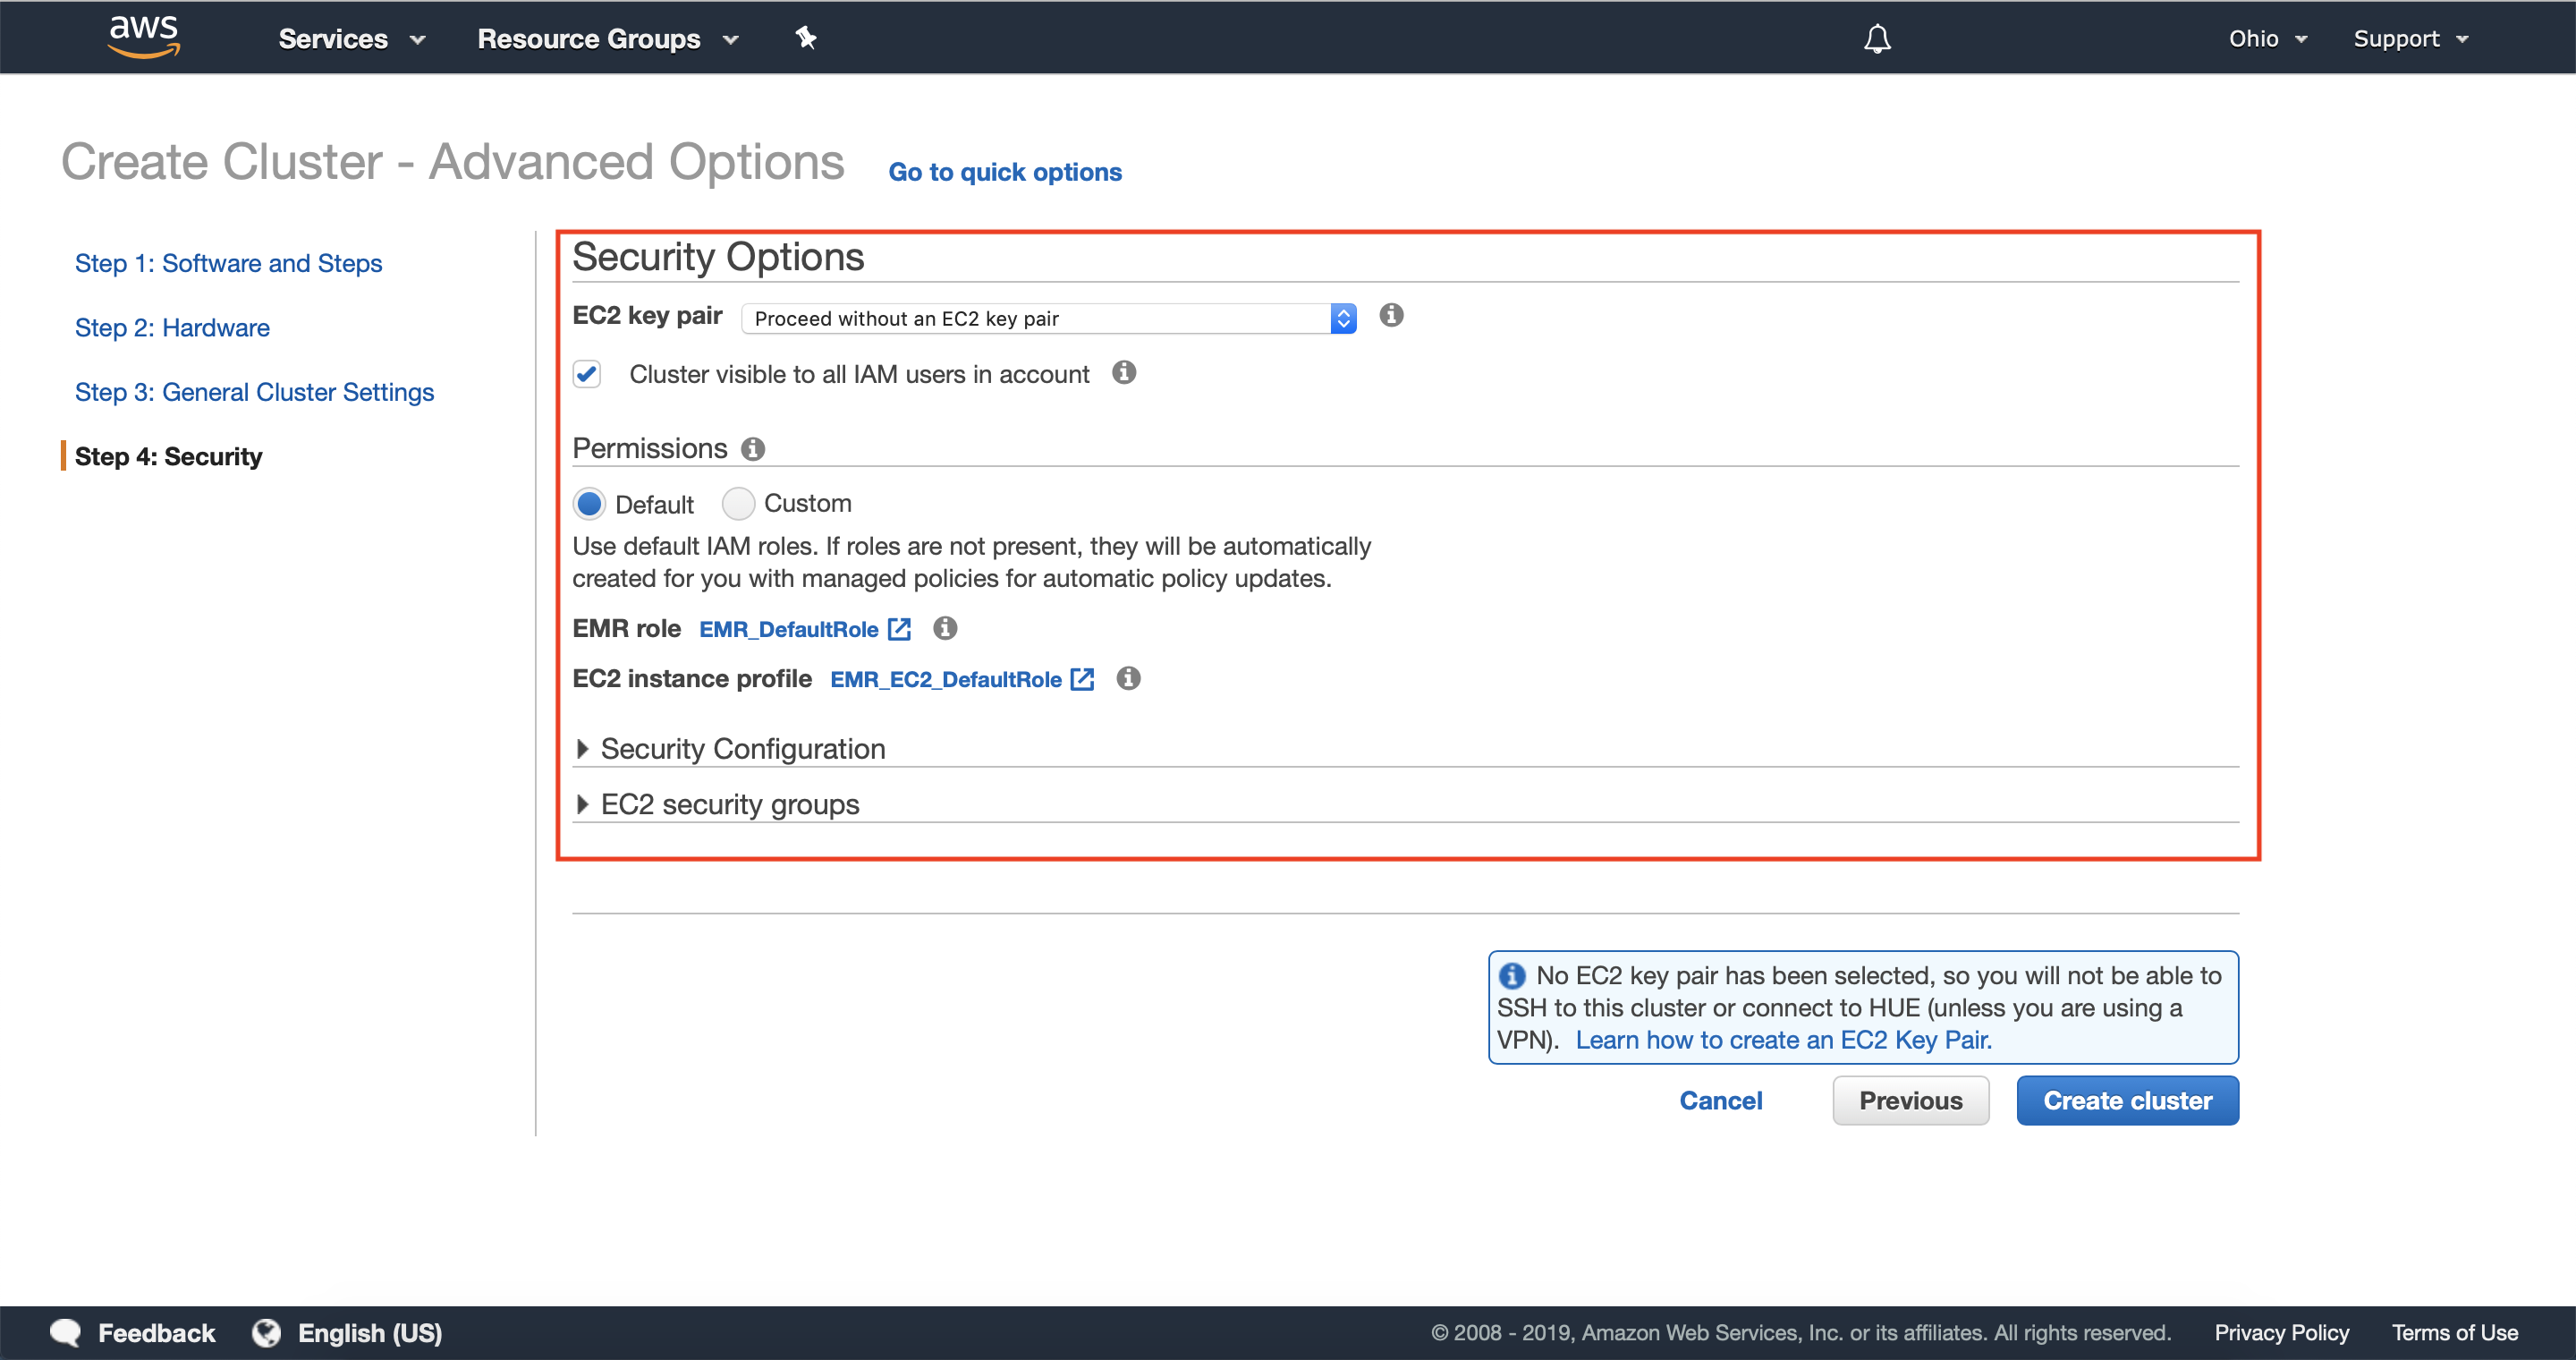 Configure security options for your cluster